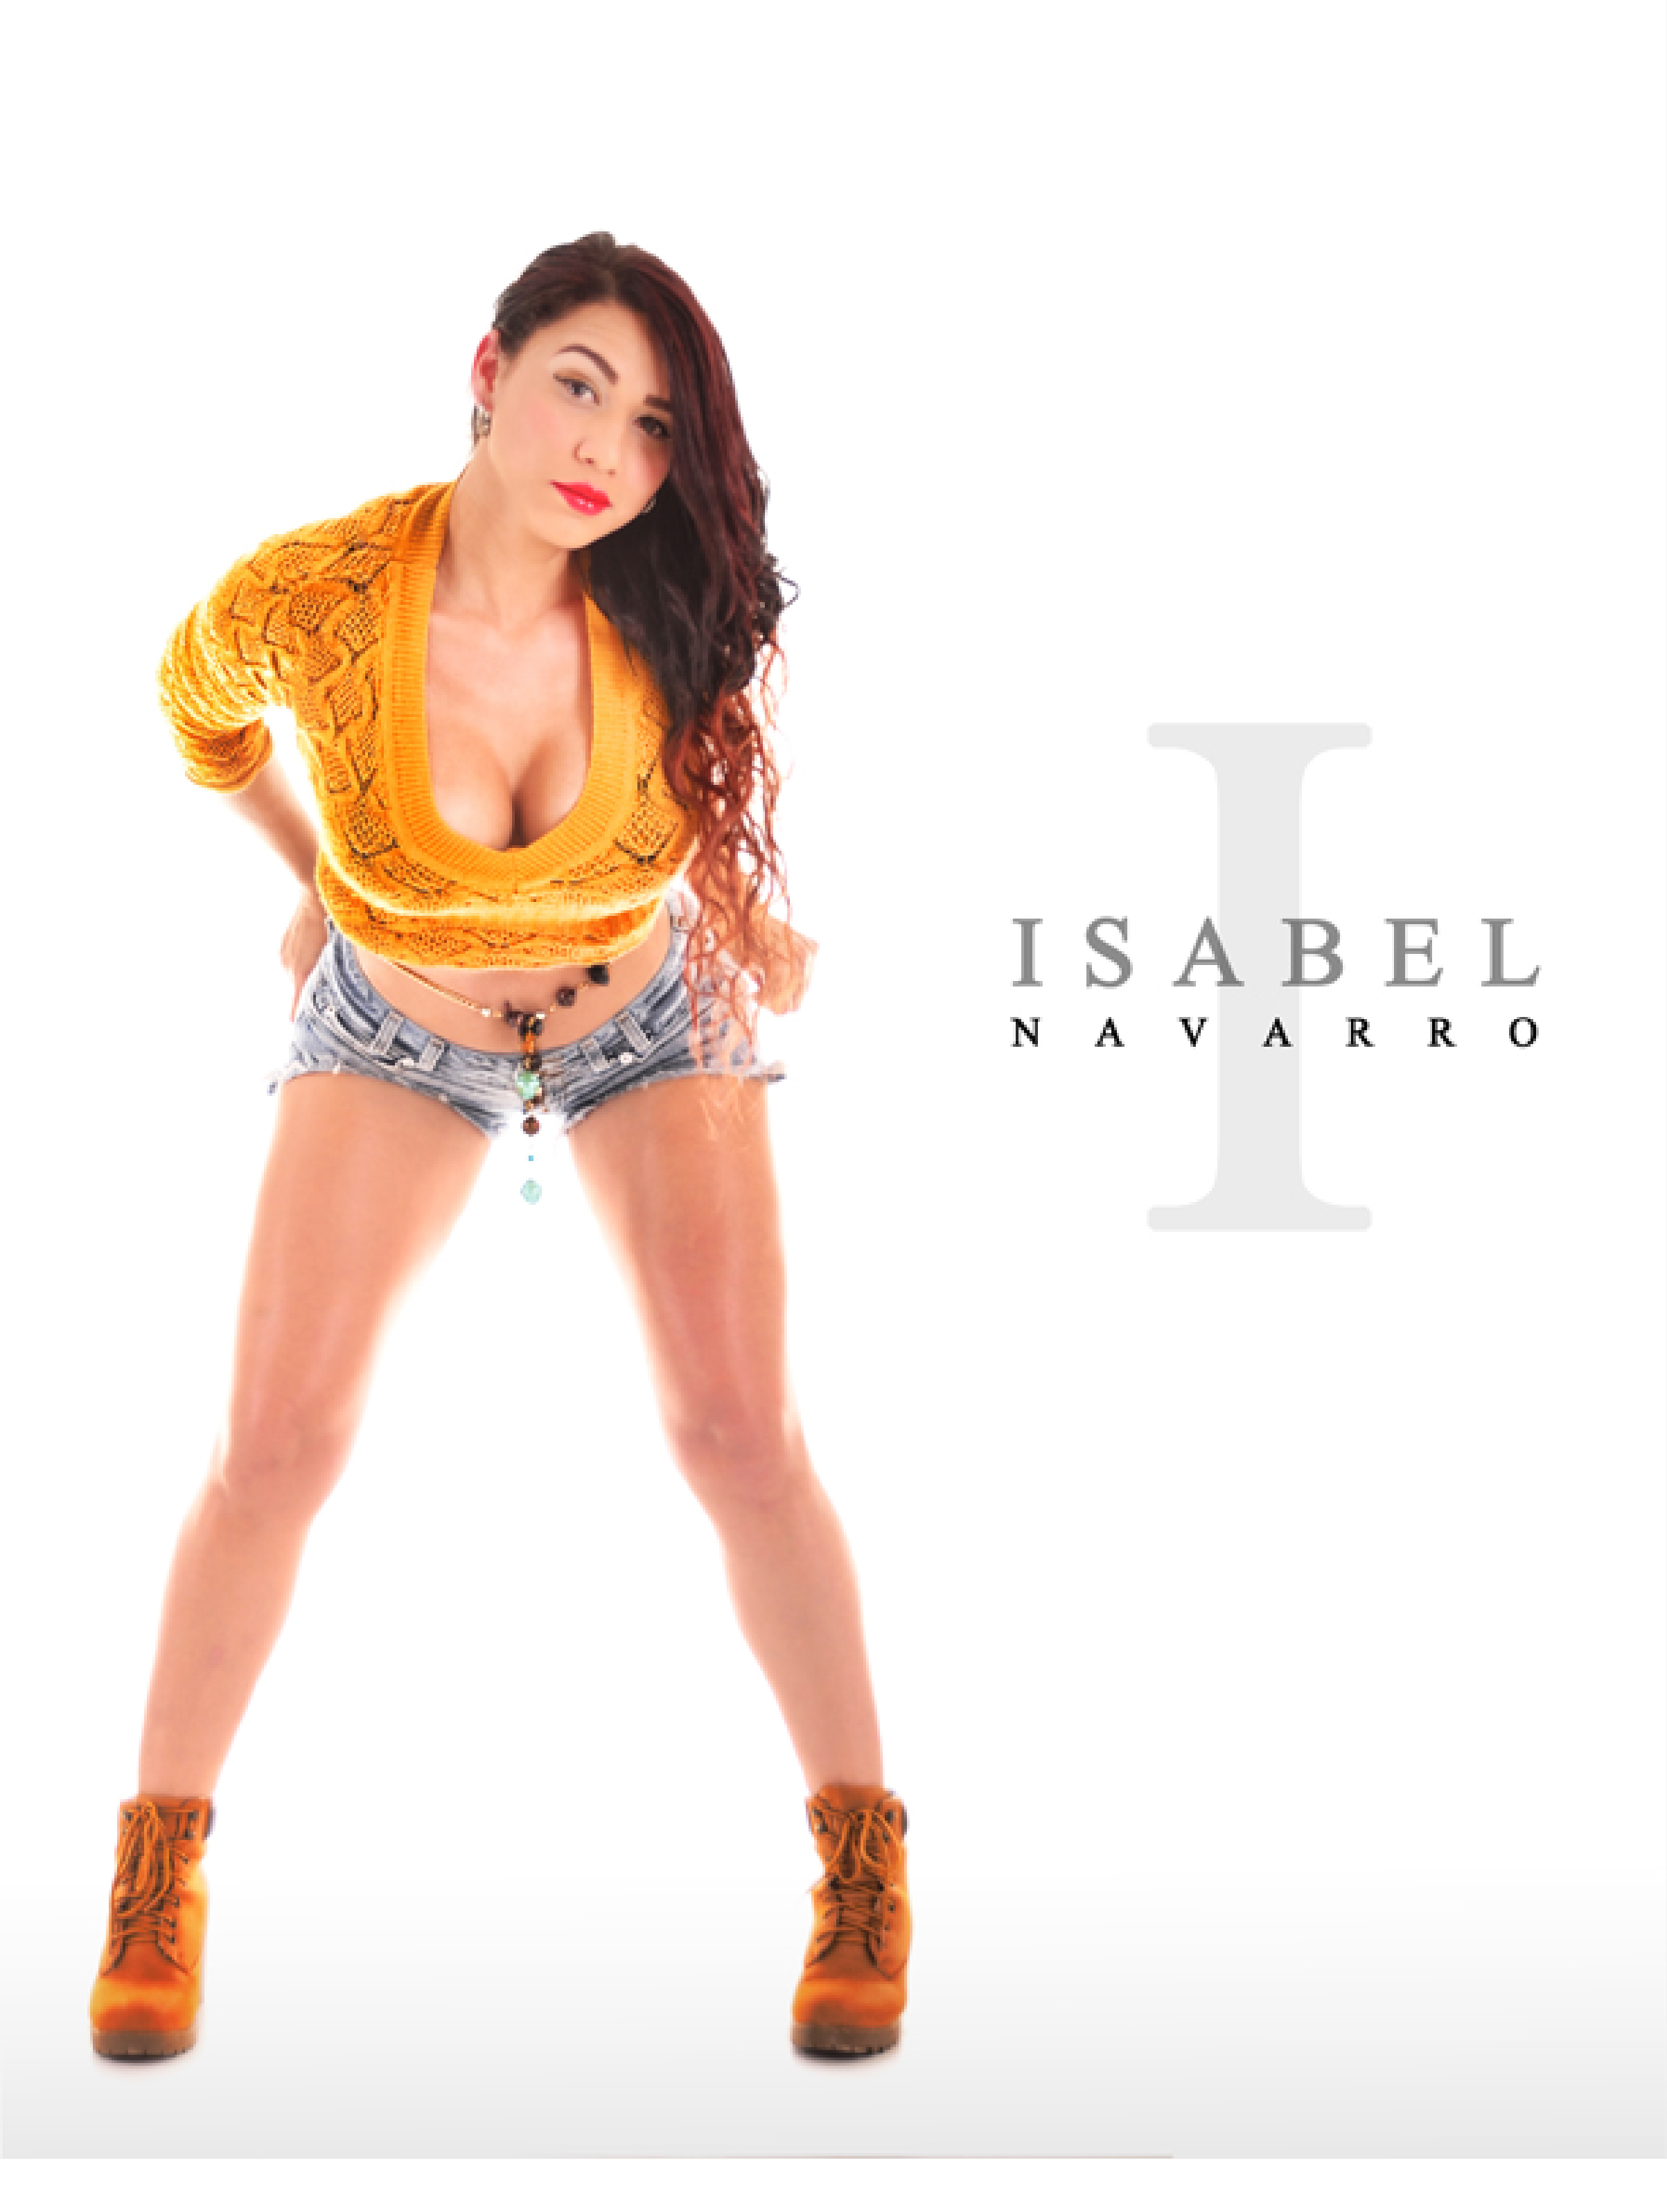 201703161435th32 6074080373777 isabel navarro - photobook.pdf1142634663